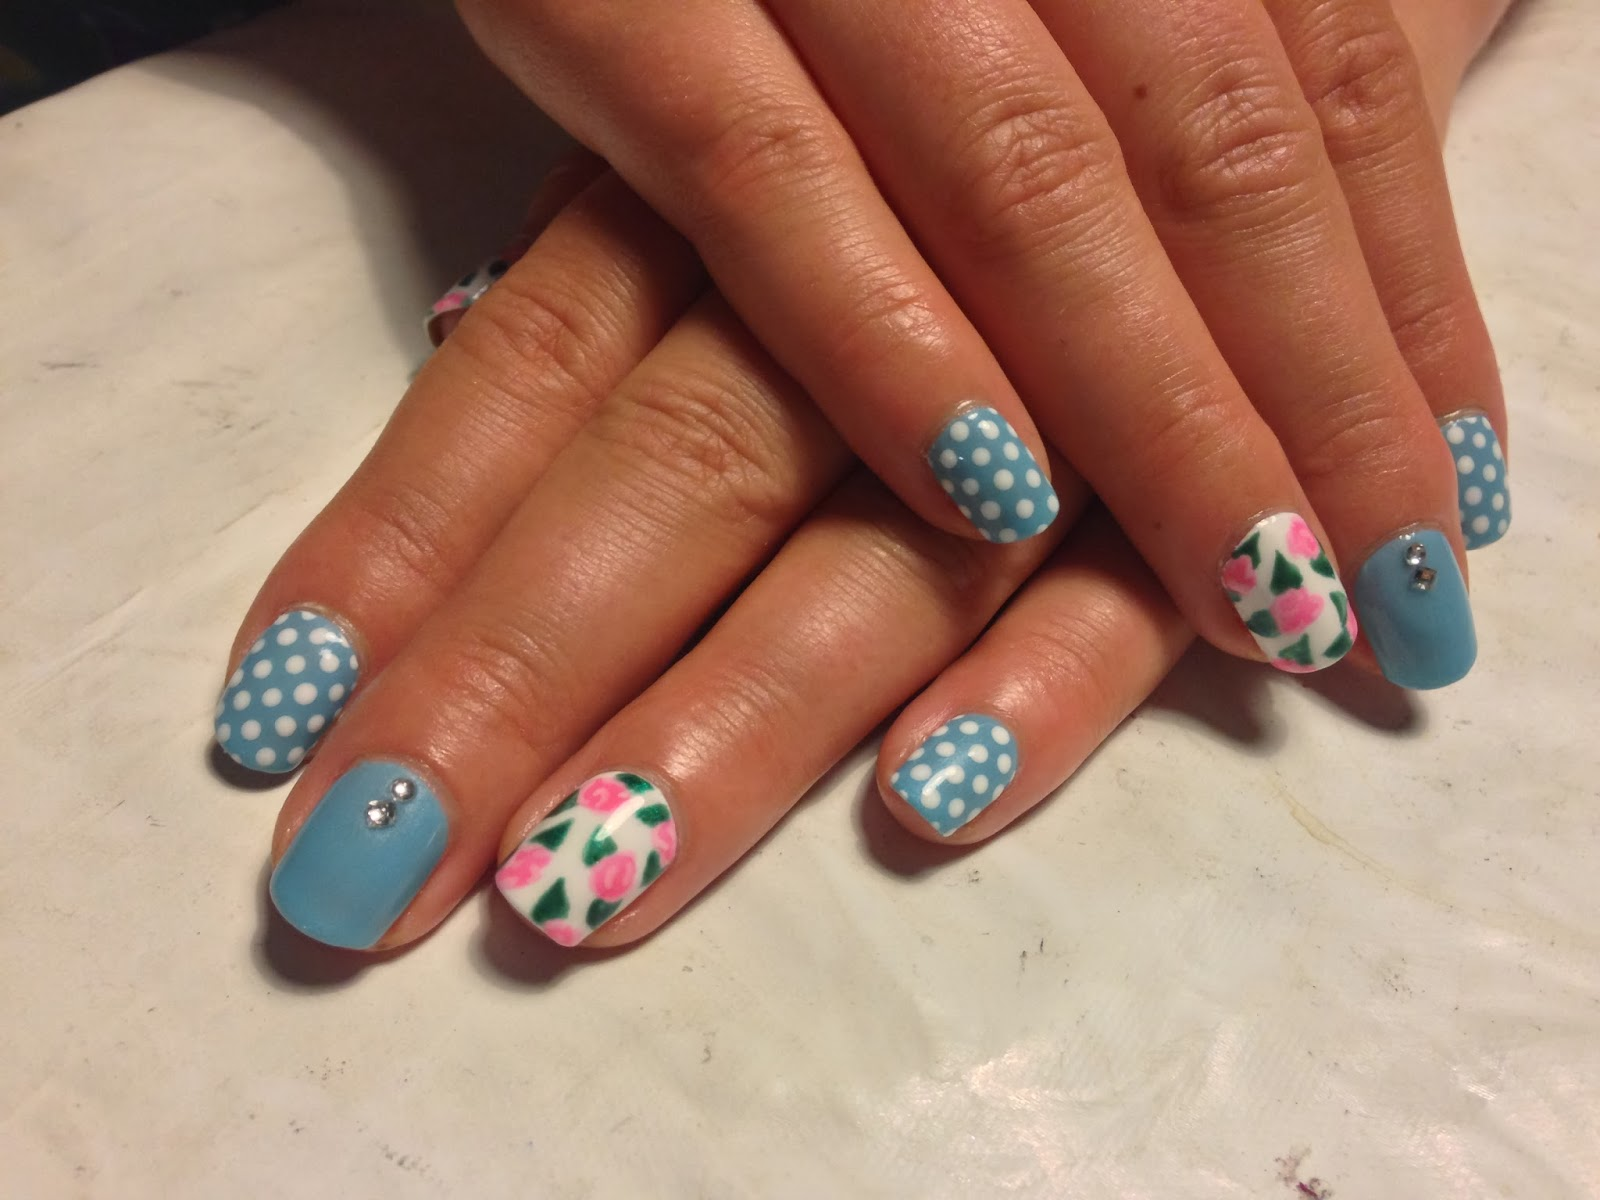 cnd shellac nail art designs u2013 best manicure for you - Shellac Nail Design Ideas